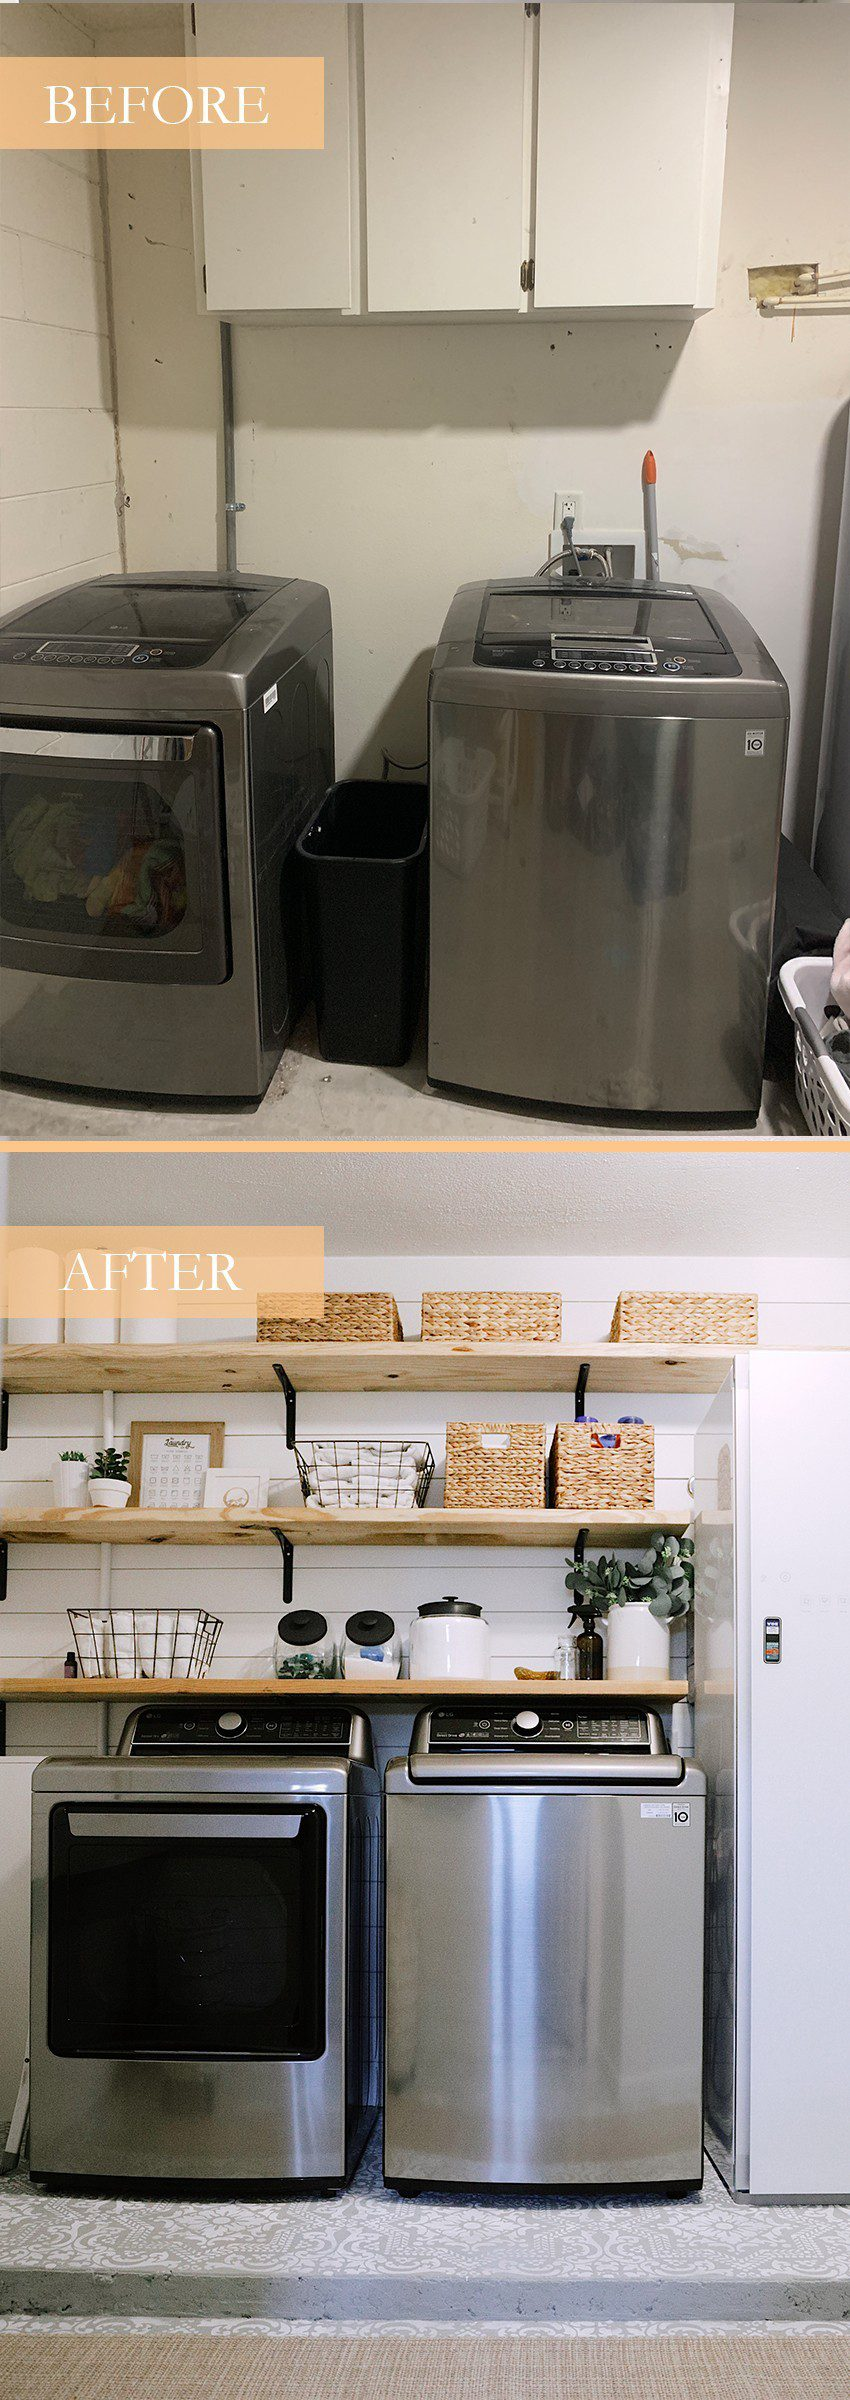 How We Designed a Family Friendly Laundry Room in our Garage - The Reveal! How We Designed a Family Friendly Laundry Room in our Garage - The Reveal! by popular Florida DIY blog, Fresh Mommy: image of a family friendly laundry room.